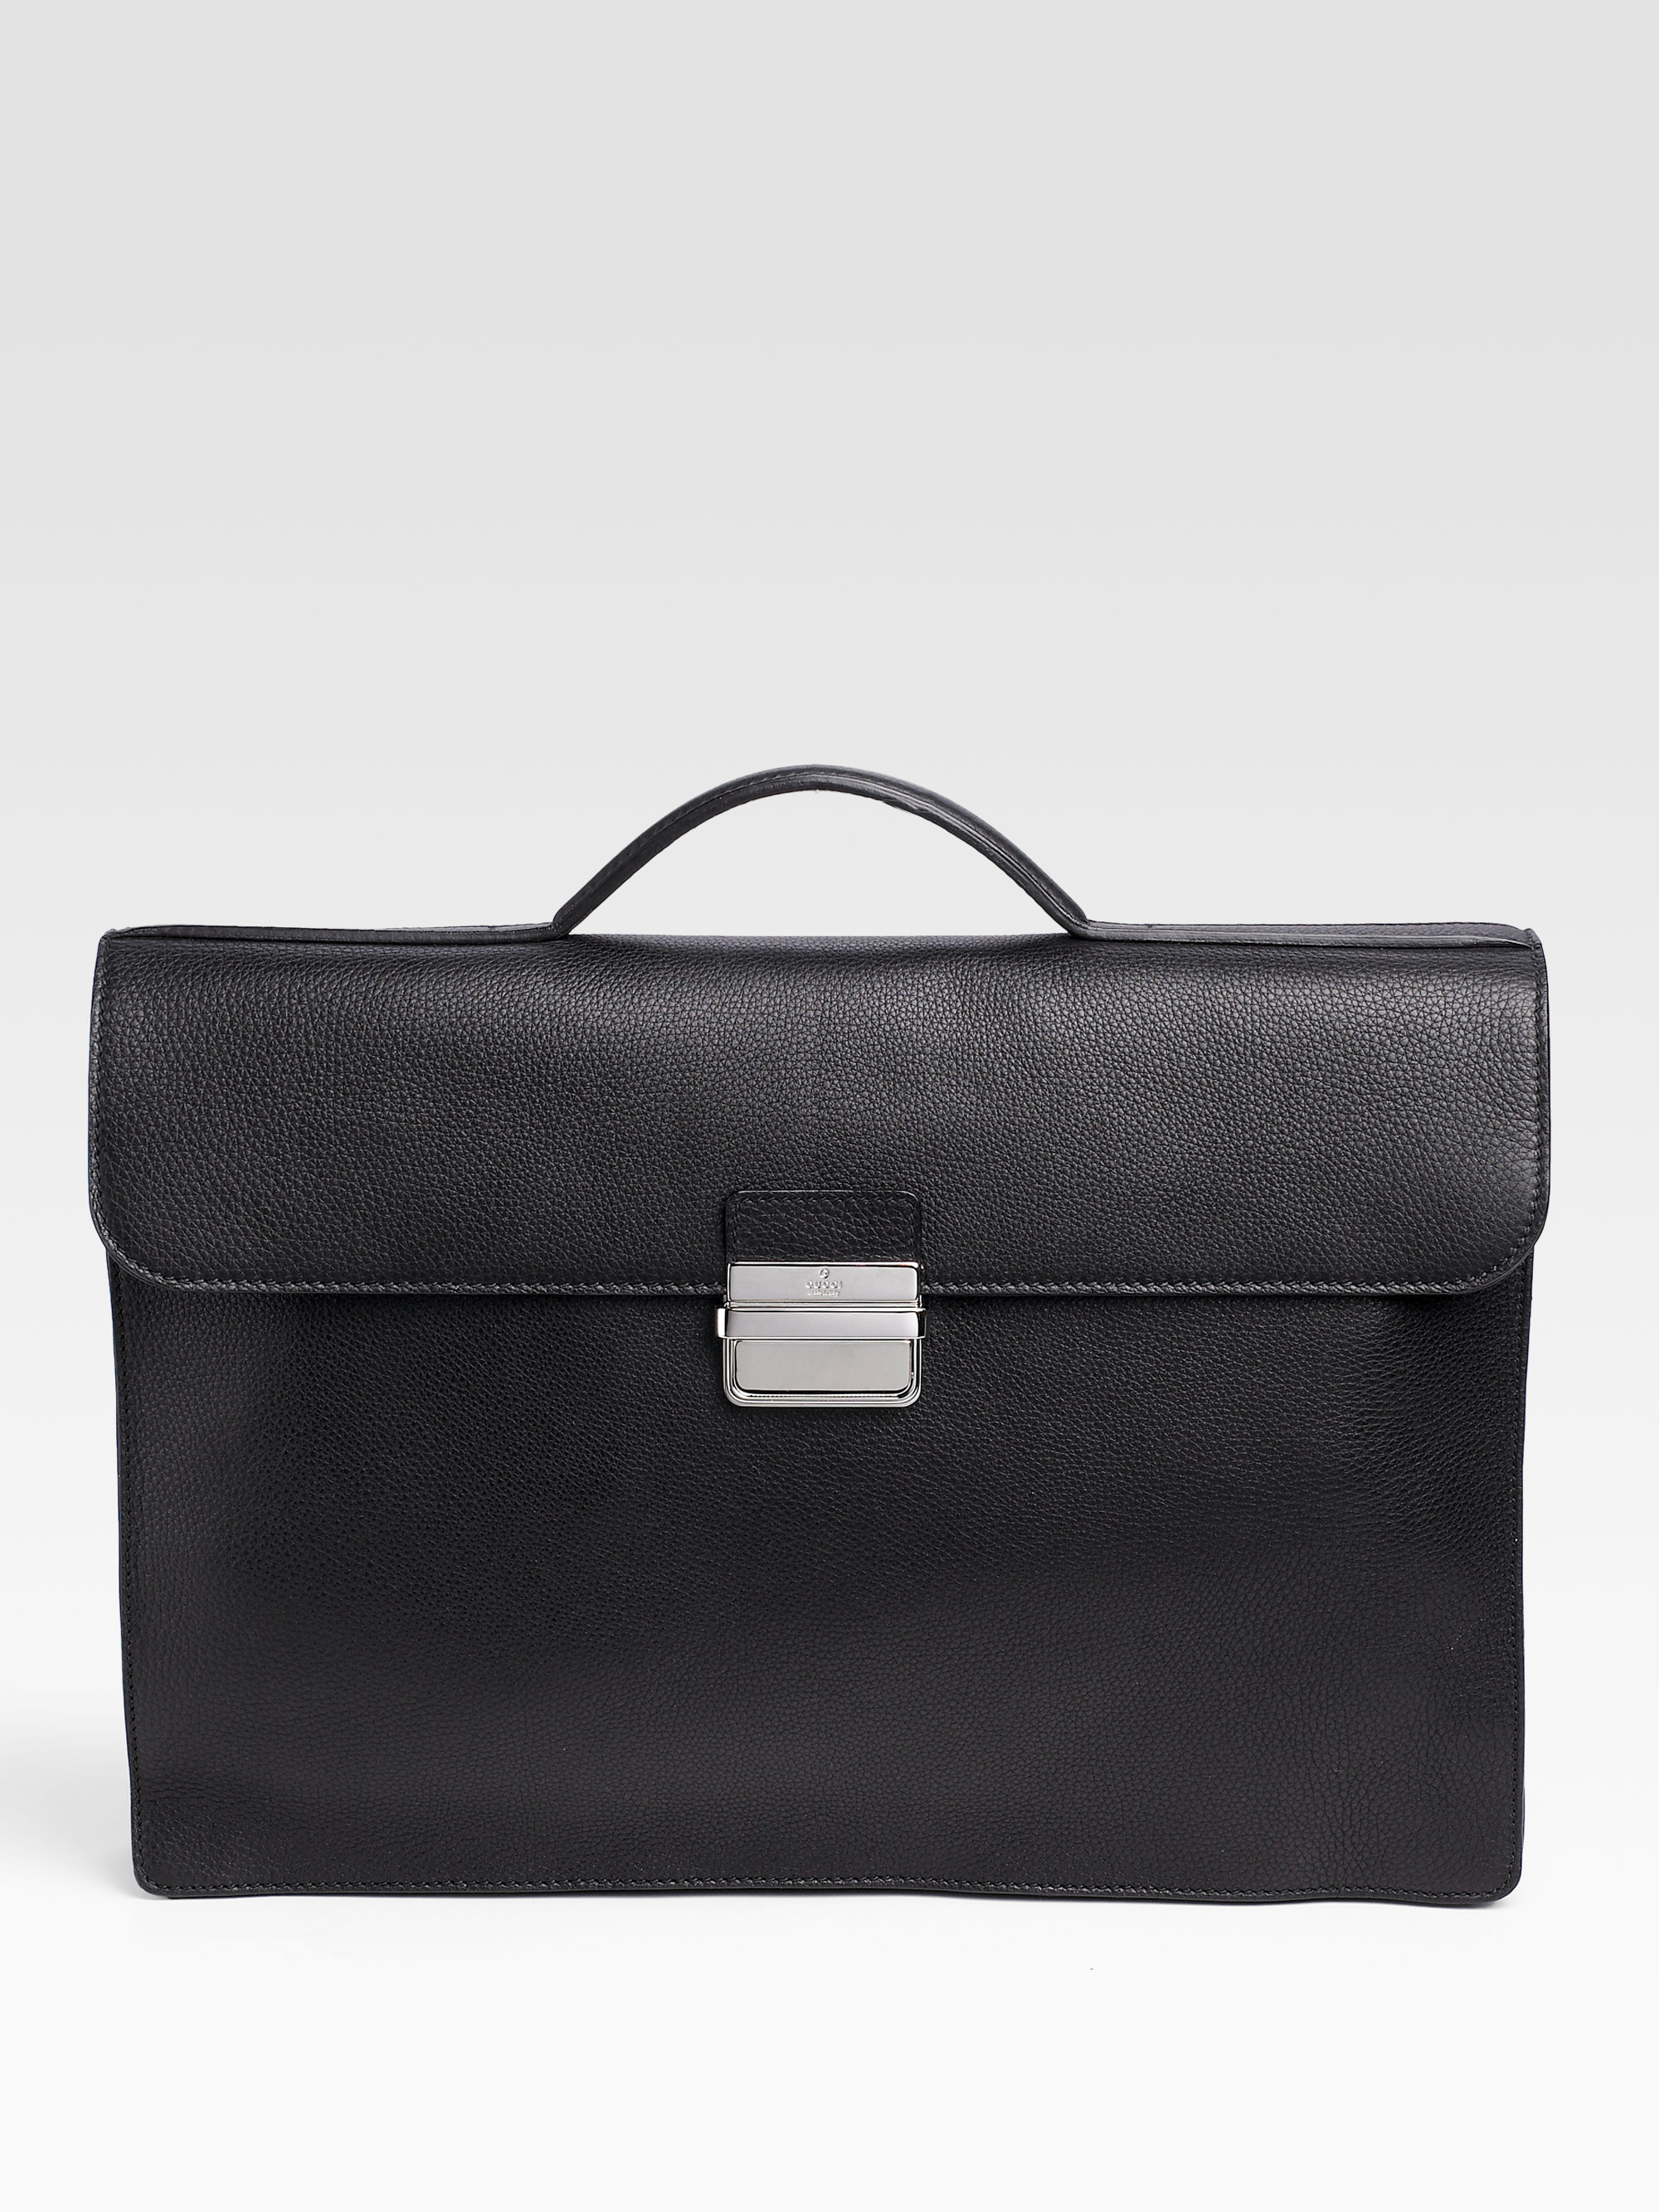 07ef6862e63d Lyst - Gucci Leather Portfolio in Black for Men